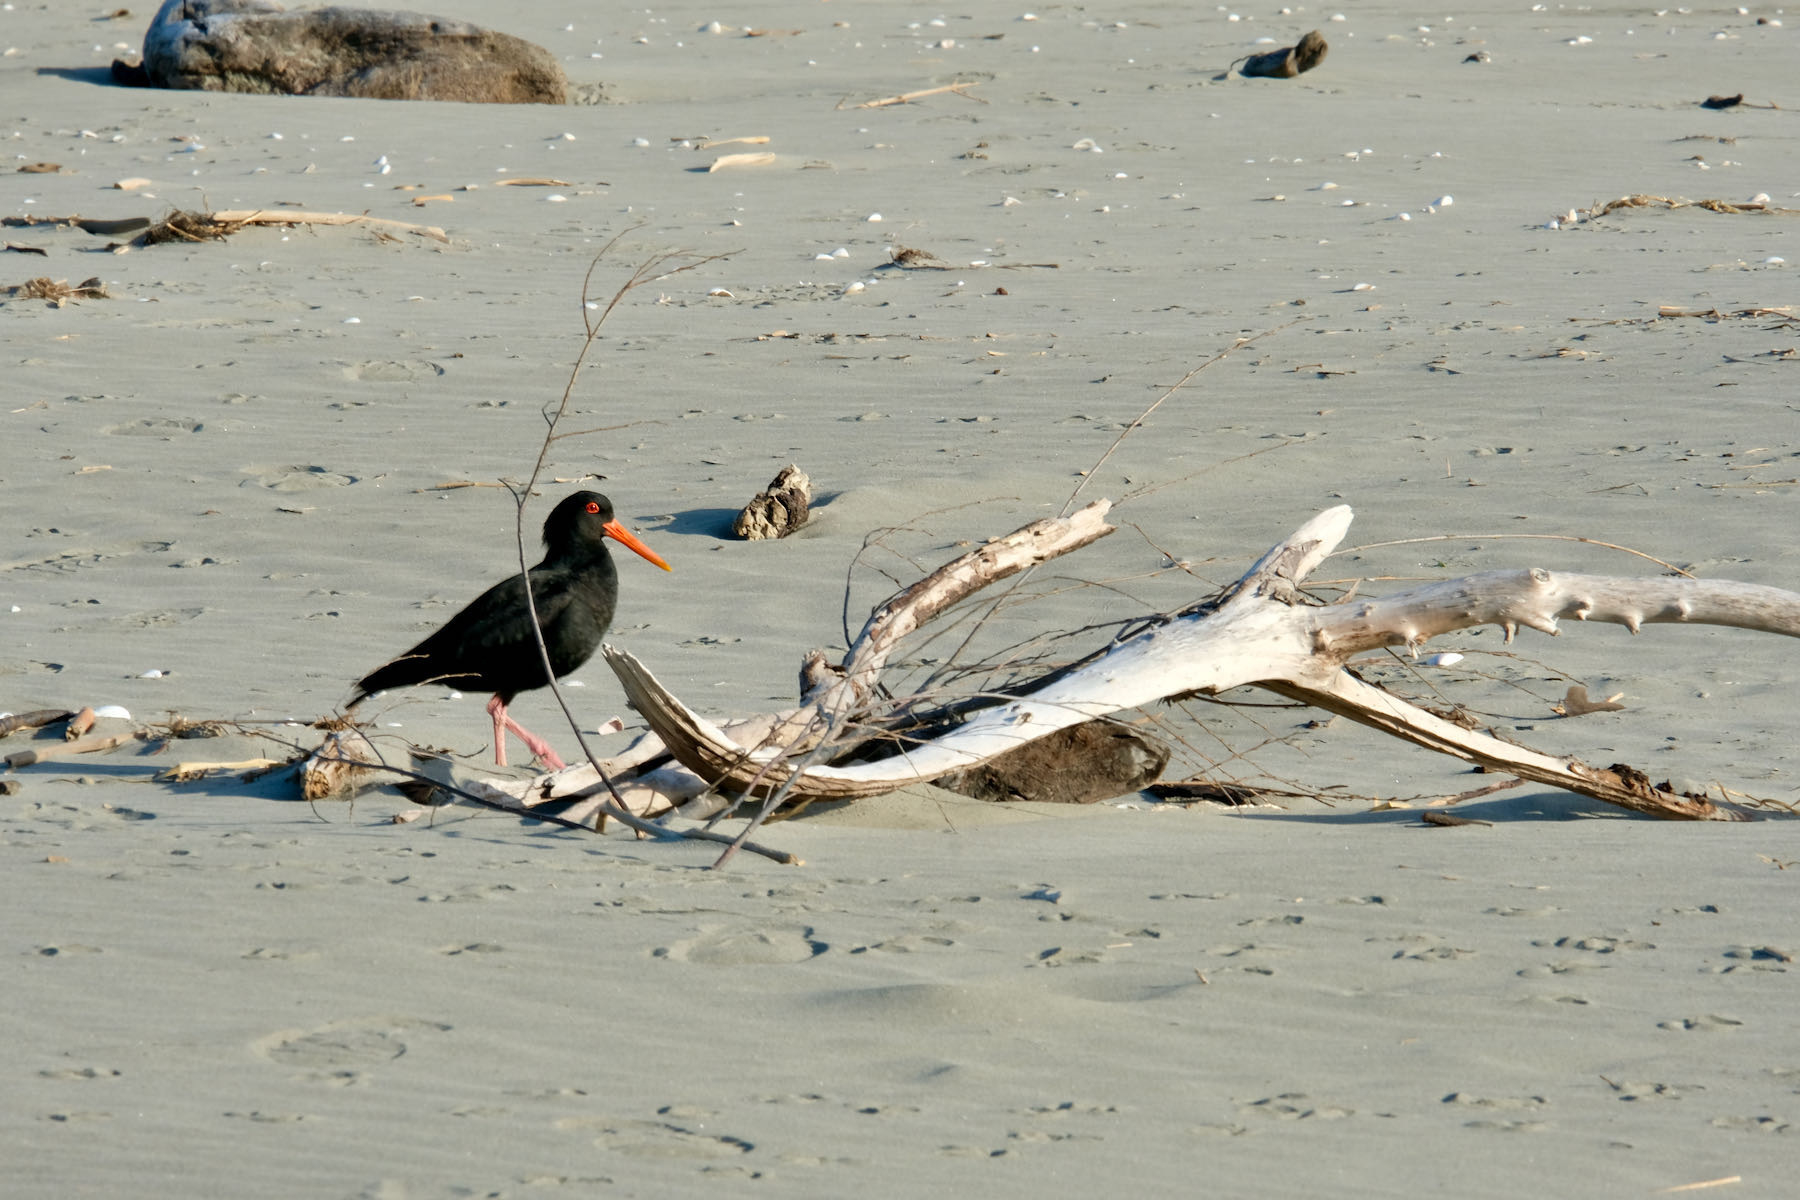 Black bird with orange bill and long legs: Variable Oystercatcher.